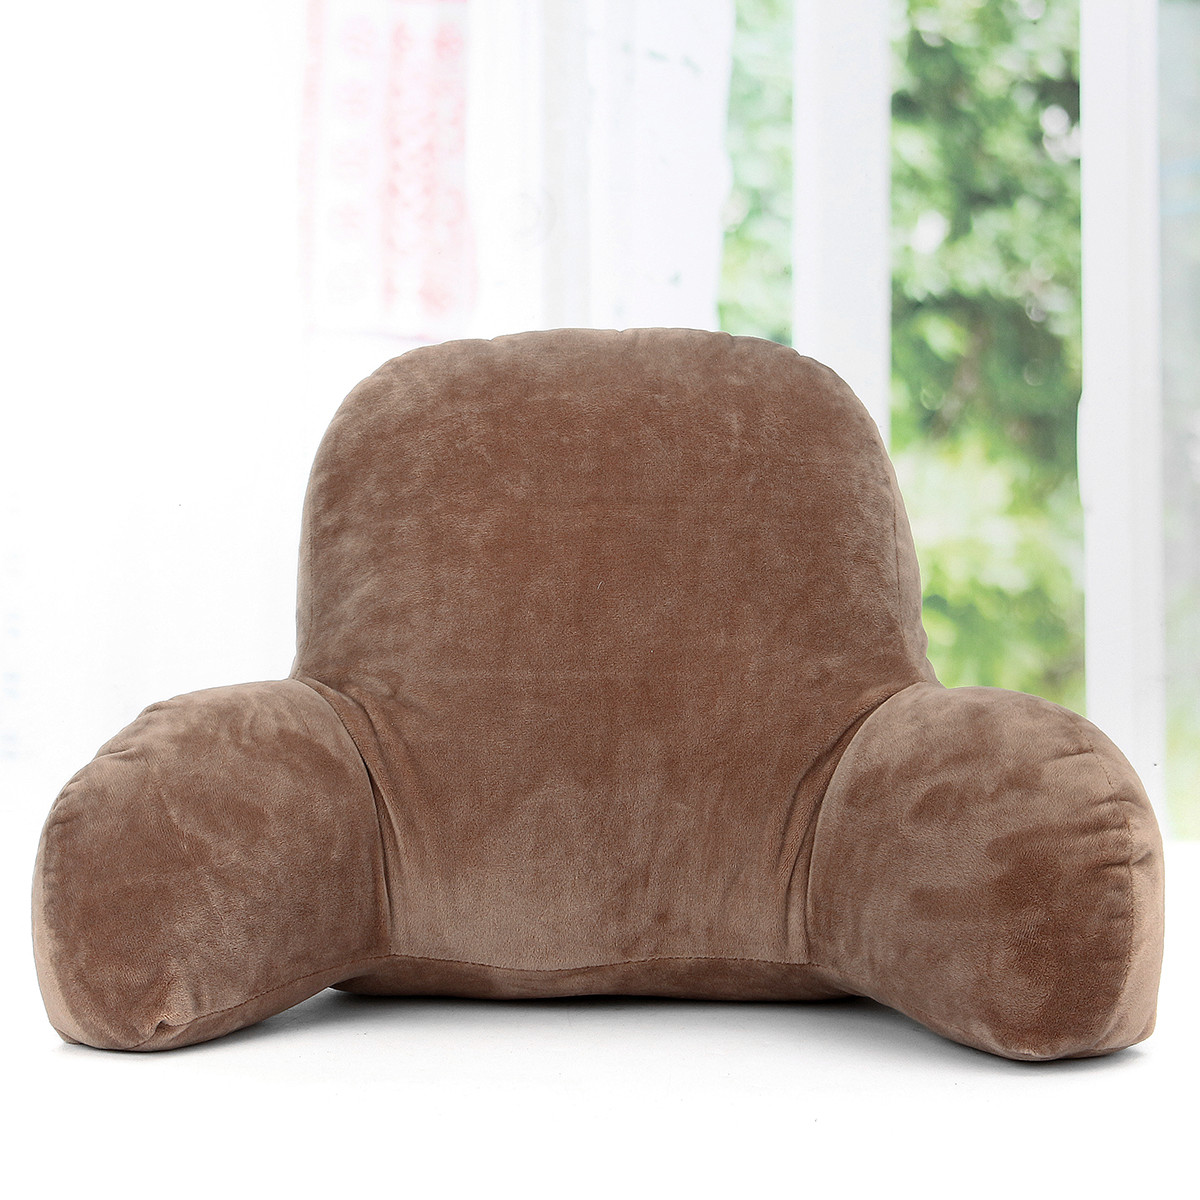 Lounge Bed Pillow with Arms